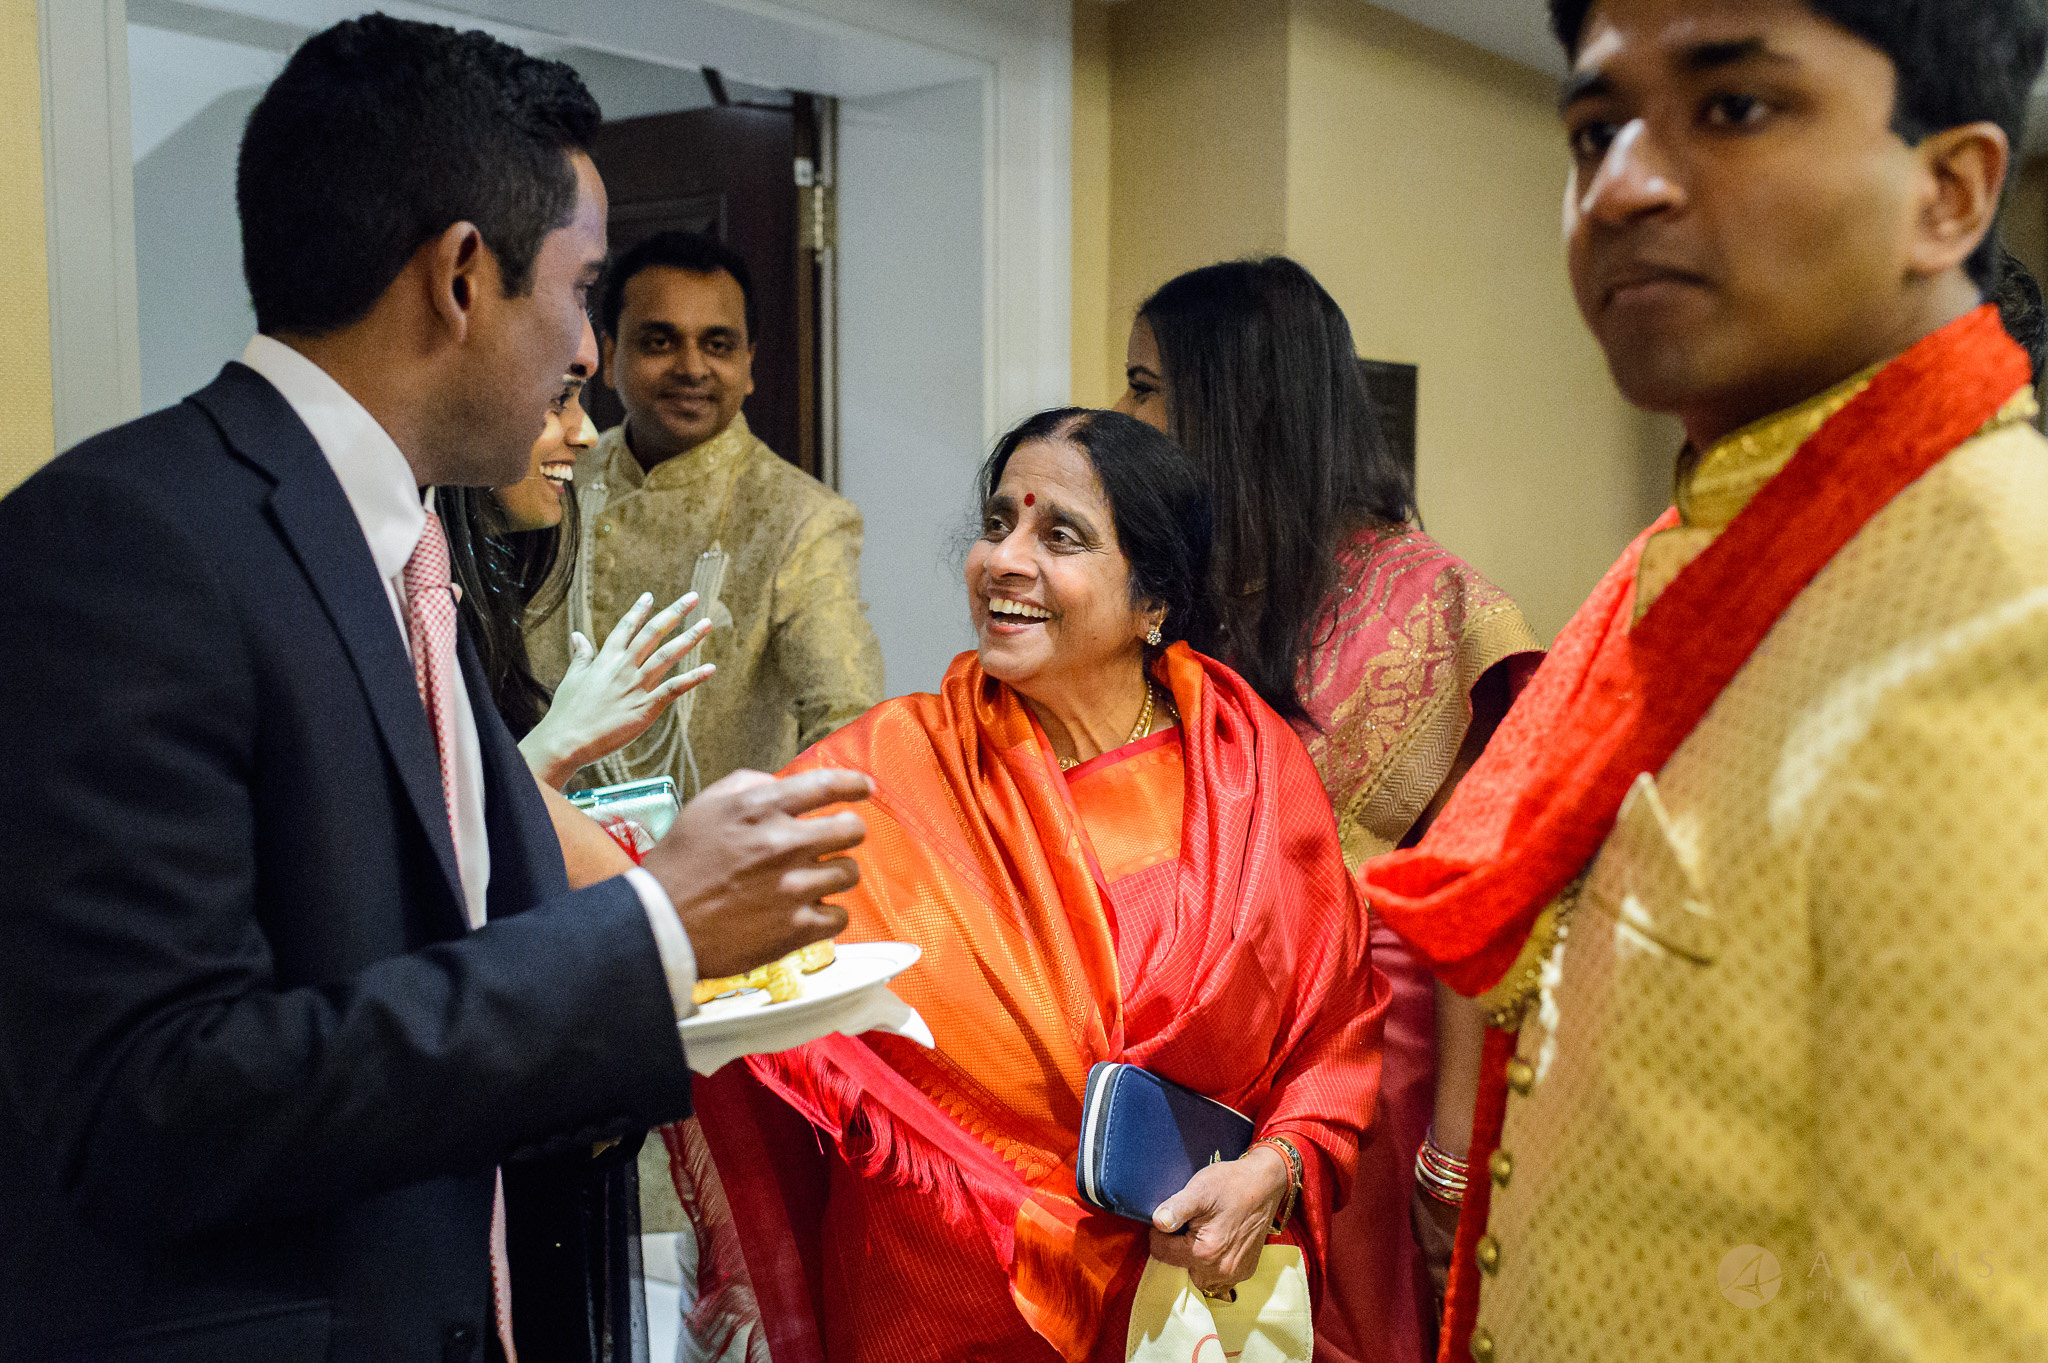 Mother of the groom greeting the guests